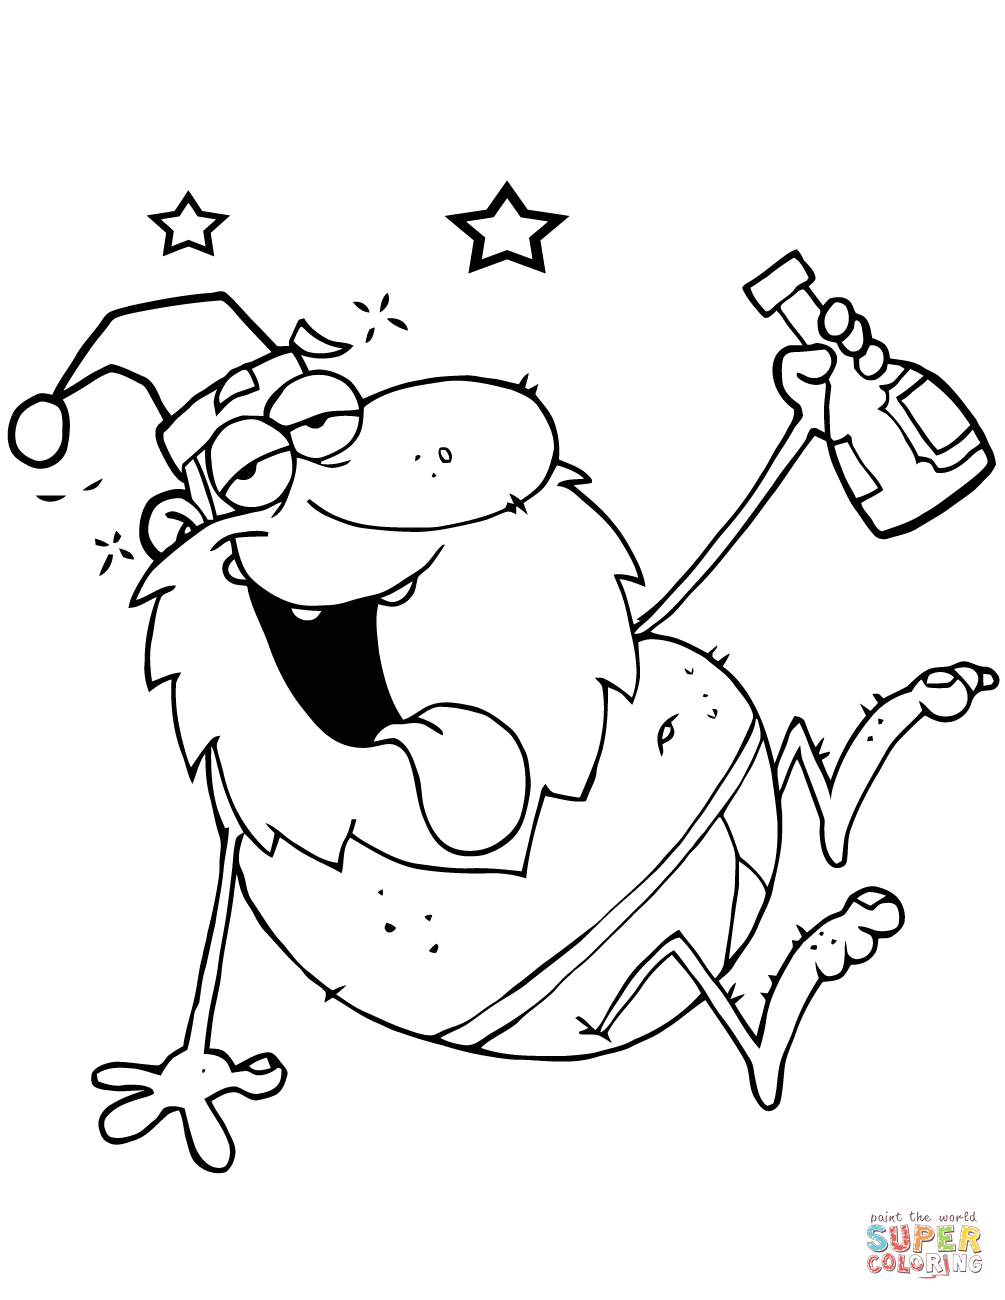 Santa Claus Coloring Pages To Print With Free